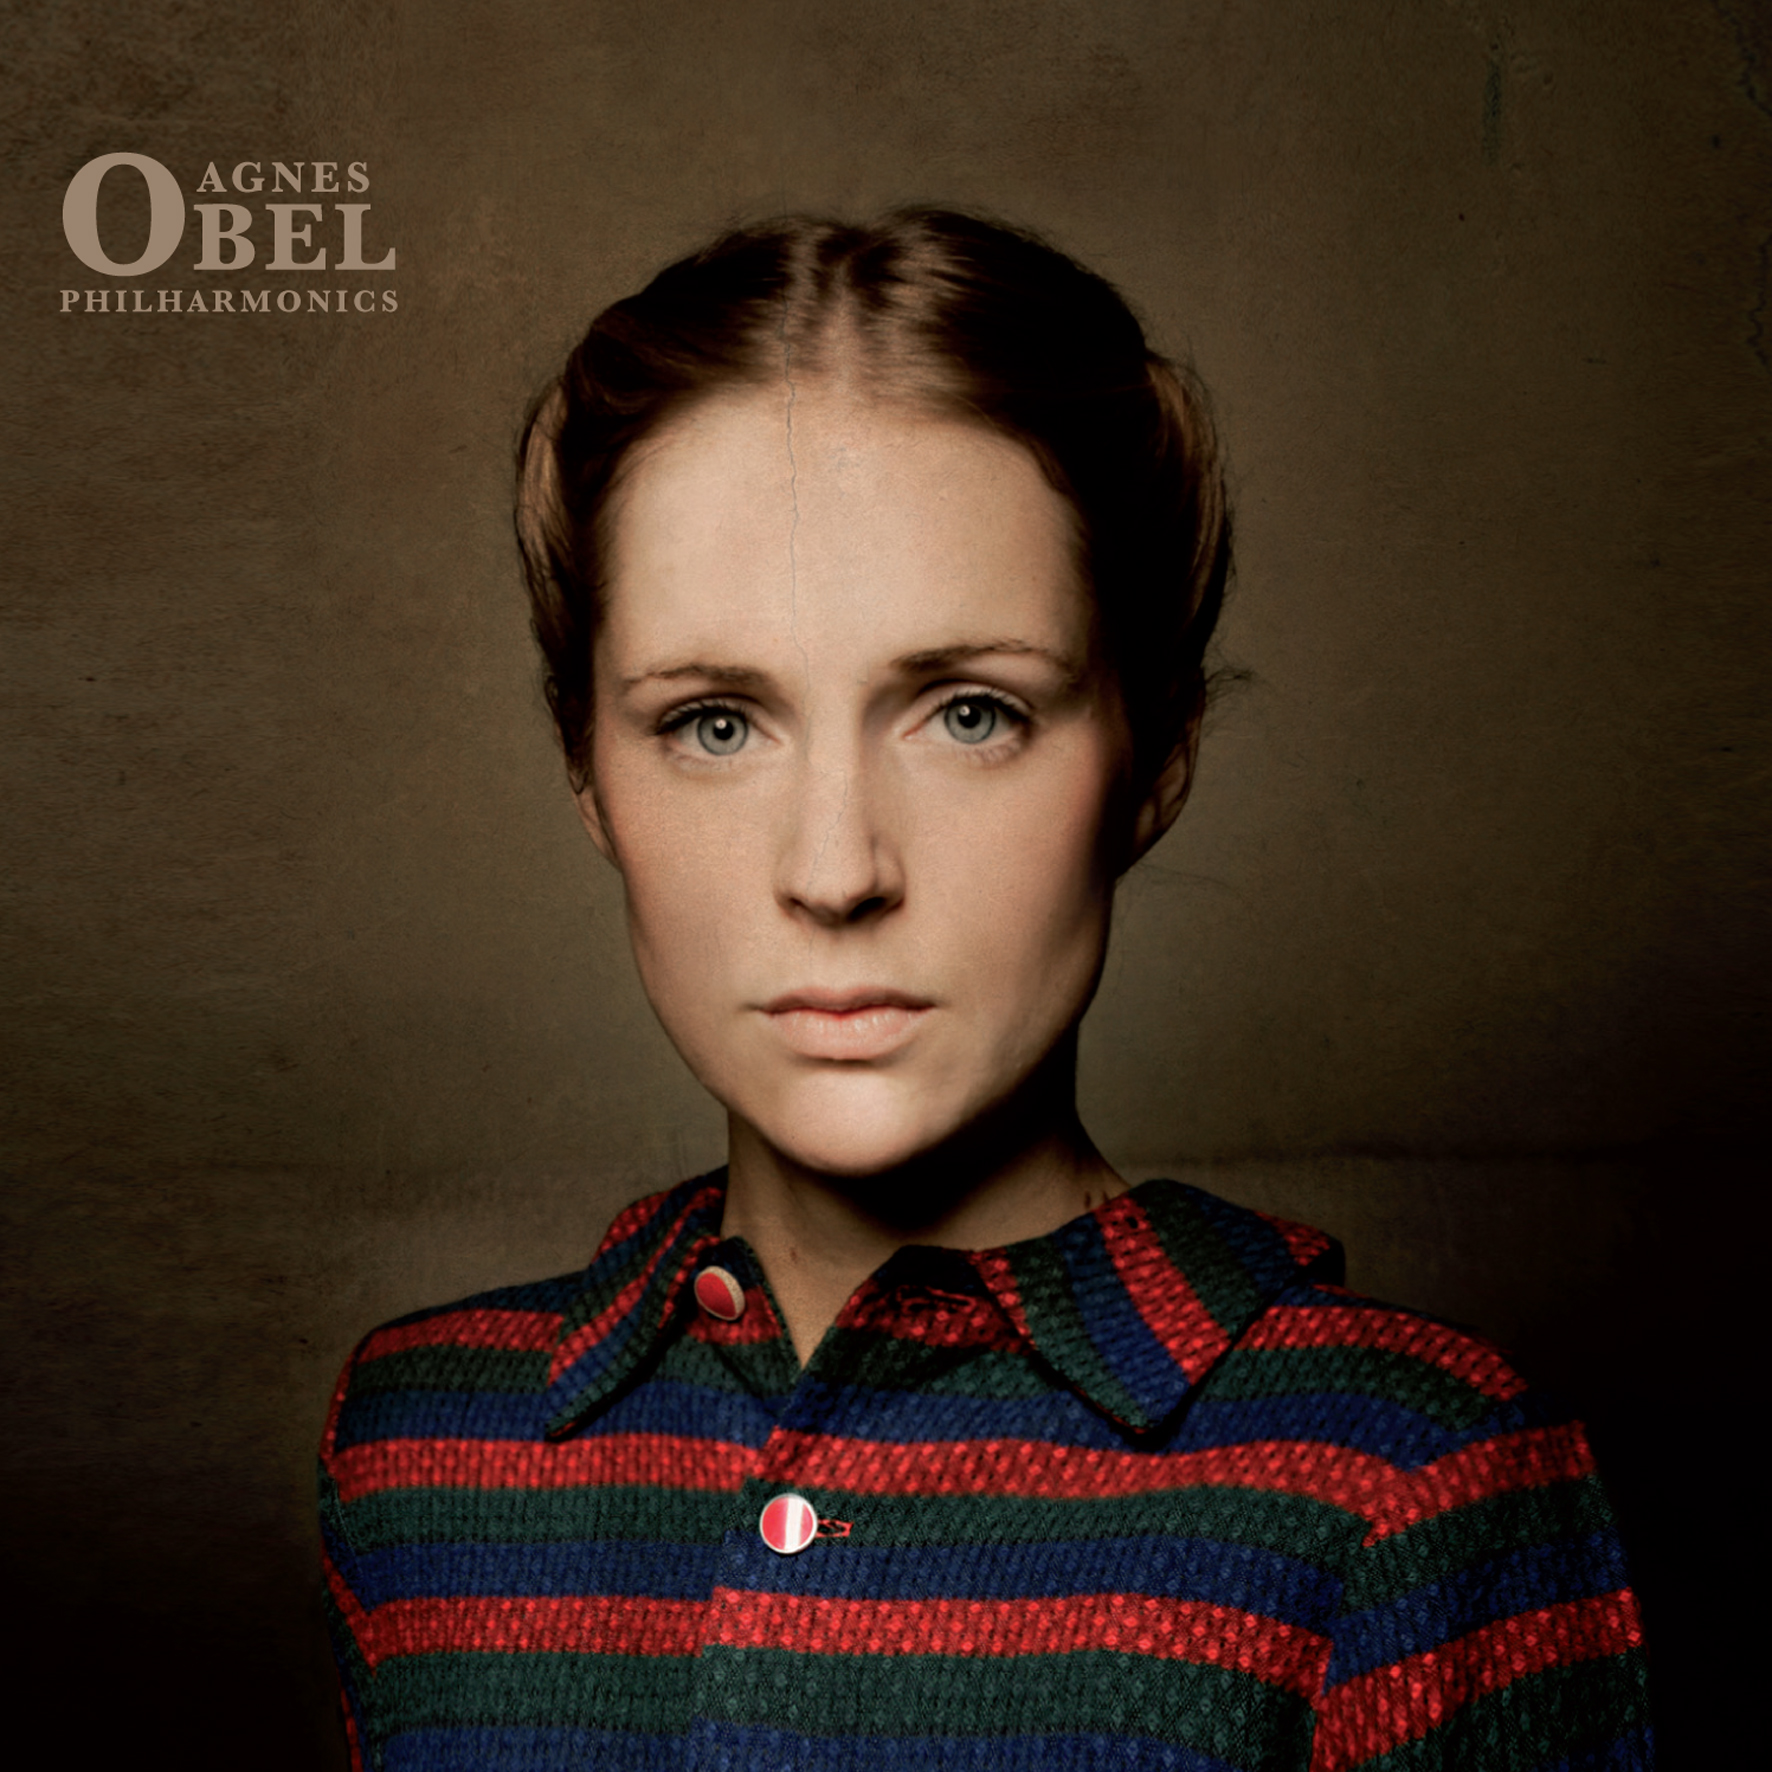 Agnes Obel, Songwriter